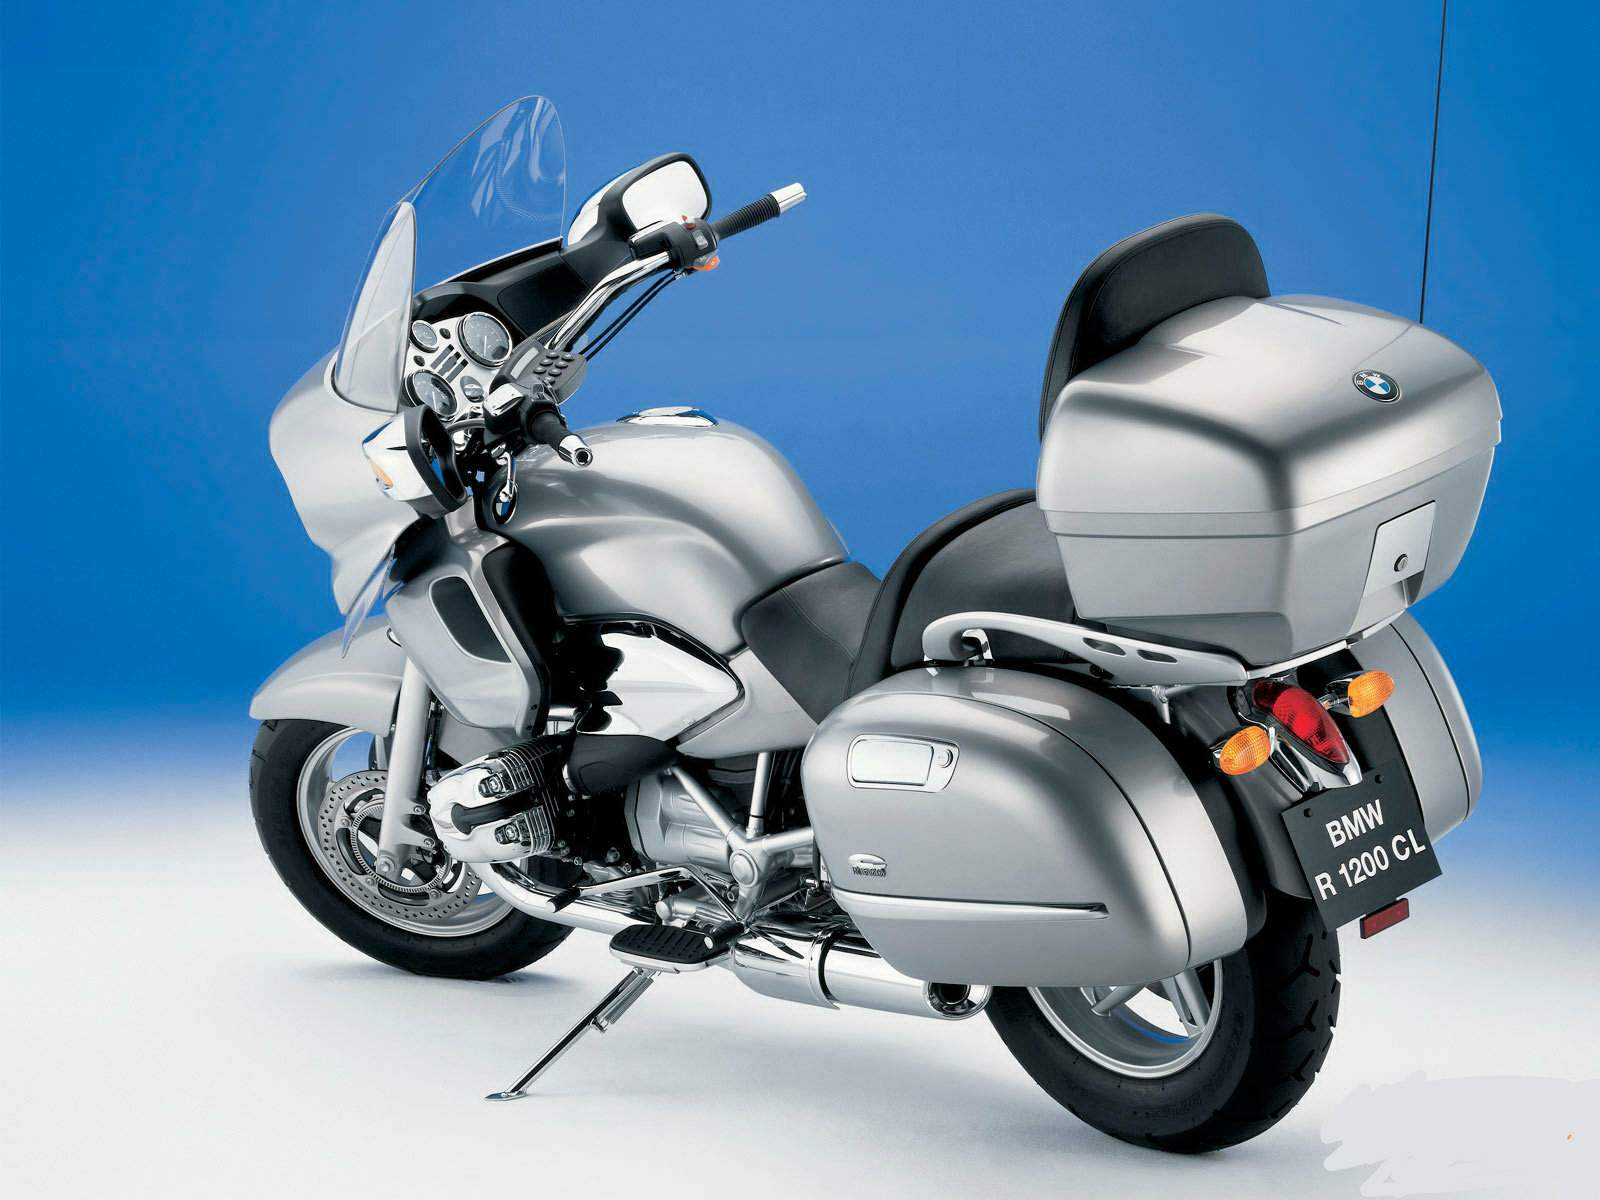 bmw r 1200 cl specs 2003 2004 autoevolution. Black Bedroom Furniture Sets. Home Design Ideas